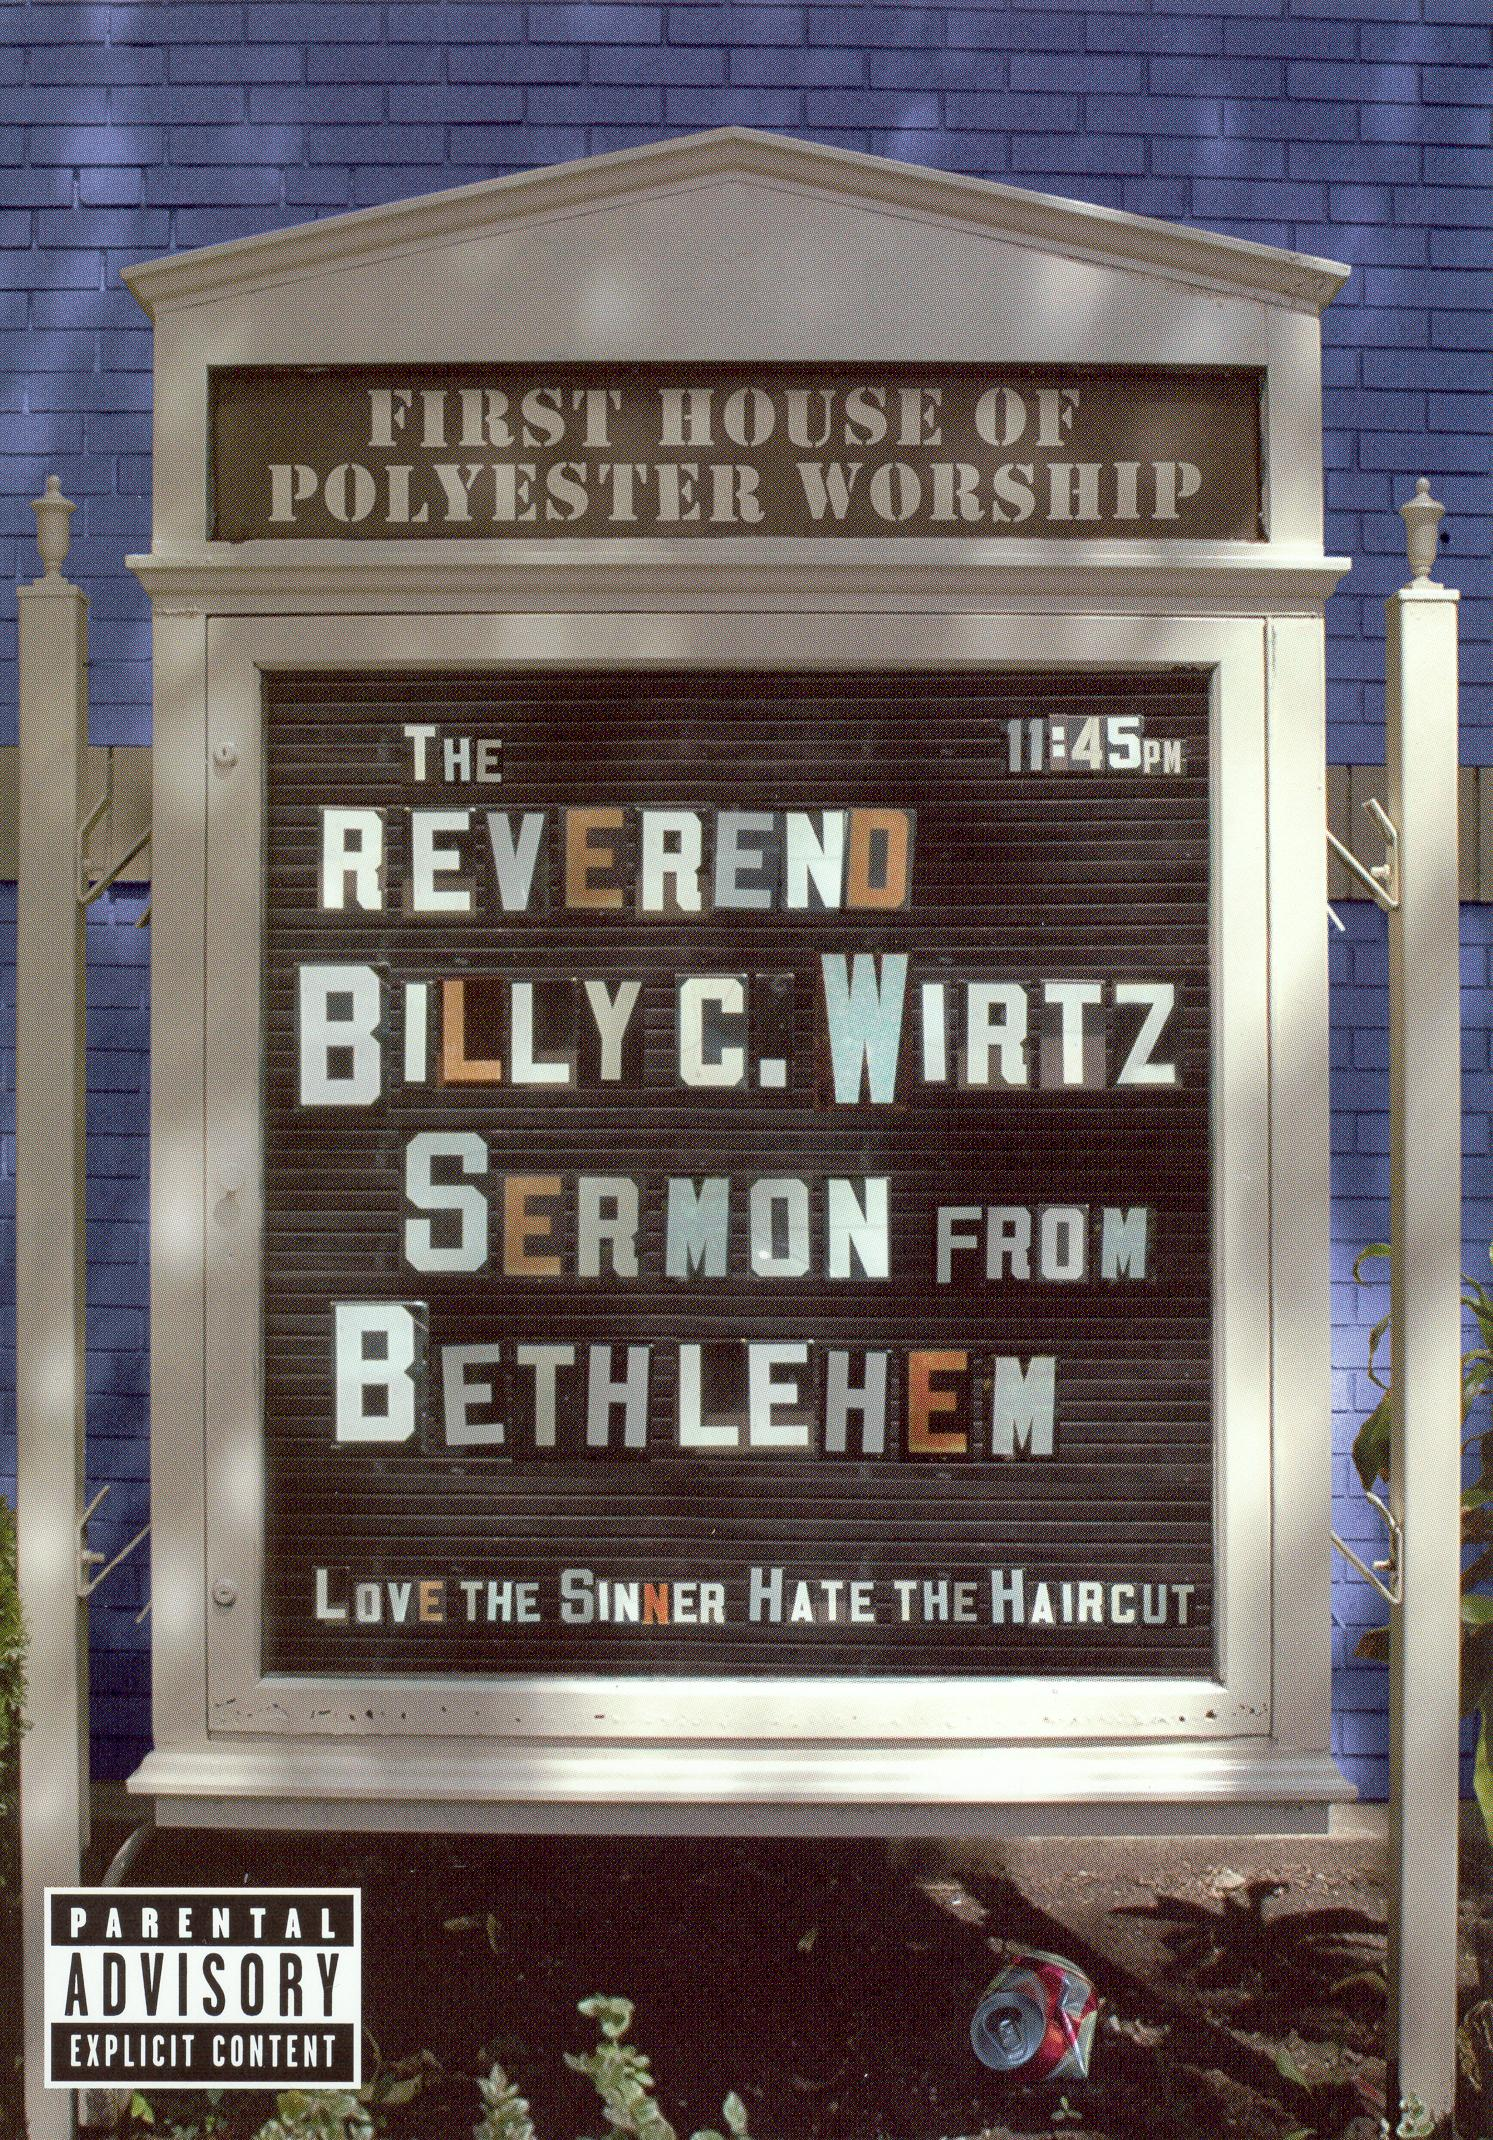 Rev. Billy C. Writz: Sermon From Bethlehem